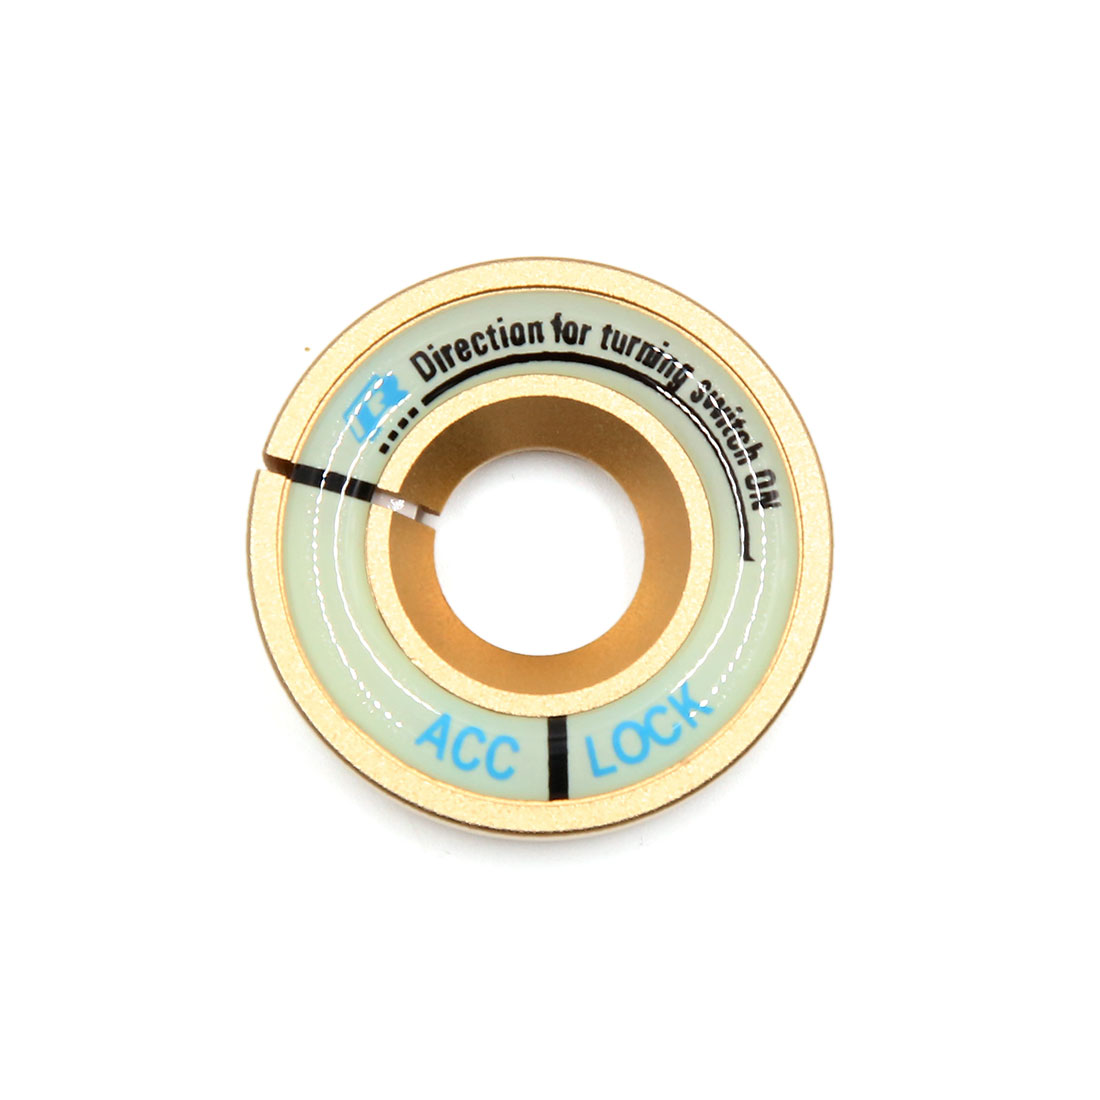 Gold Tone 40mm Outer Diameter Luminous Engine Start Stop Switch Button Decorative Ring